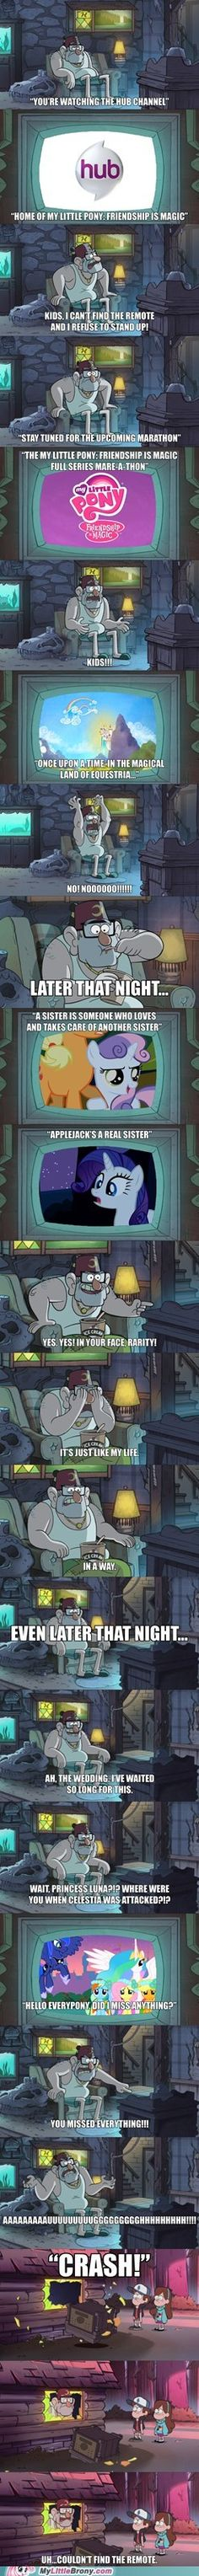 Seriously though, why wasn't Luna in that episode? I mean it's not like she's allergic to daylight. She and Celestia should have face rolled Chrysalis.